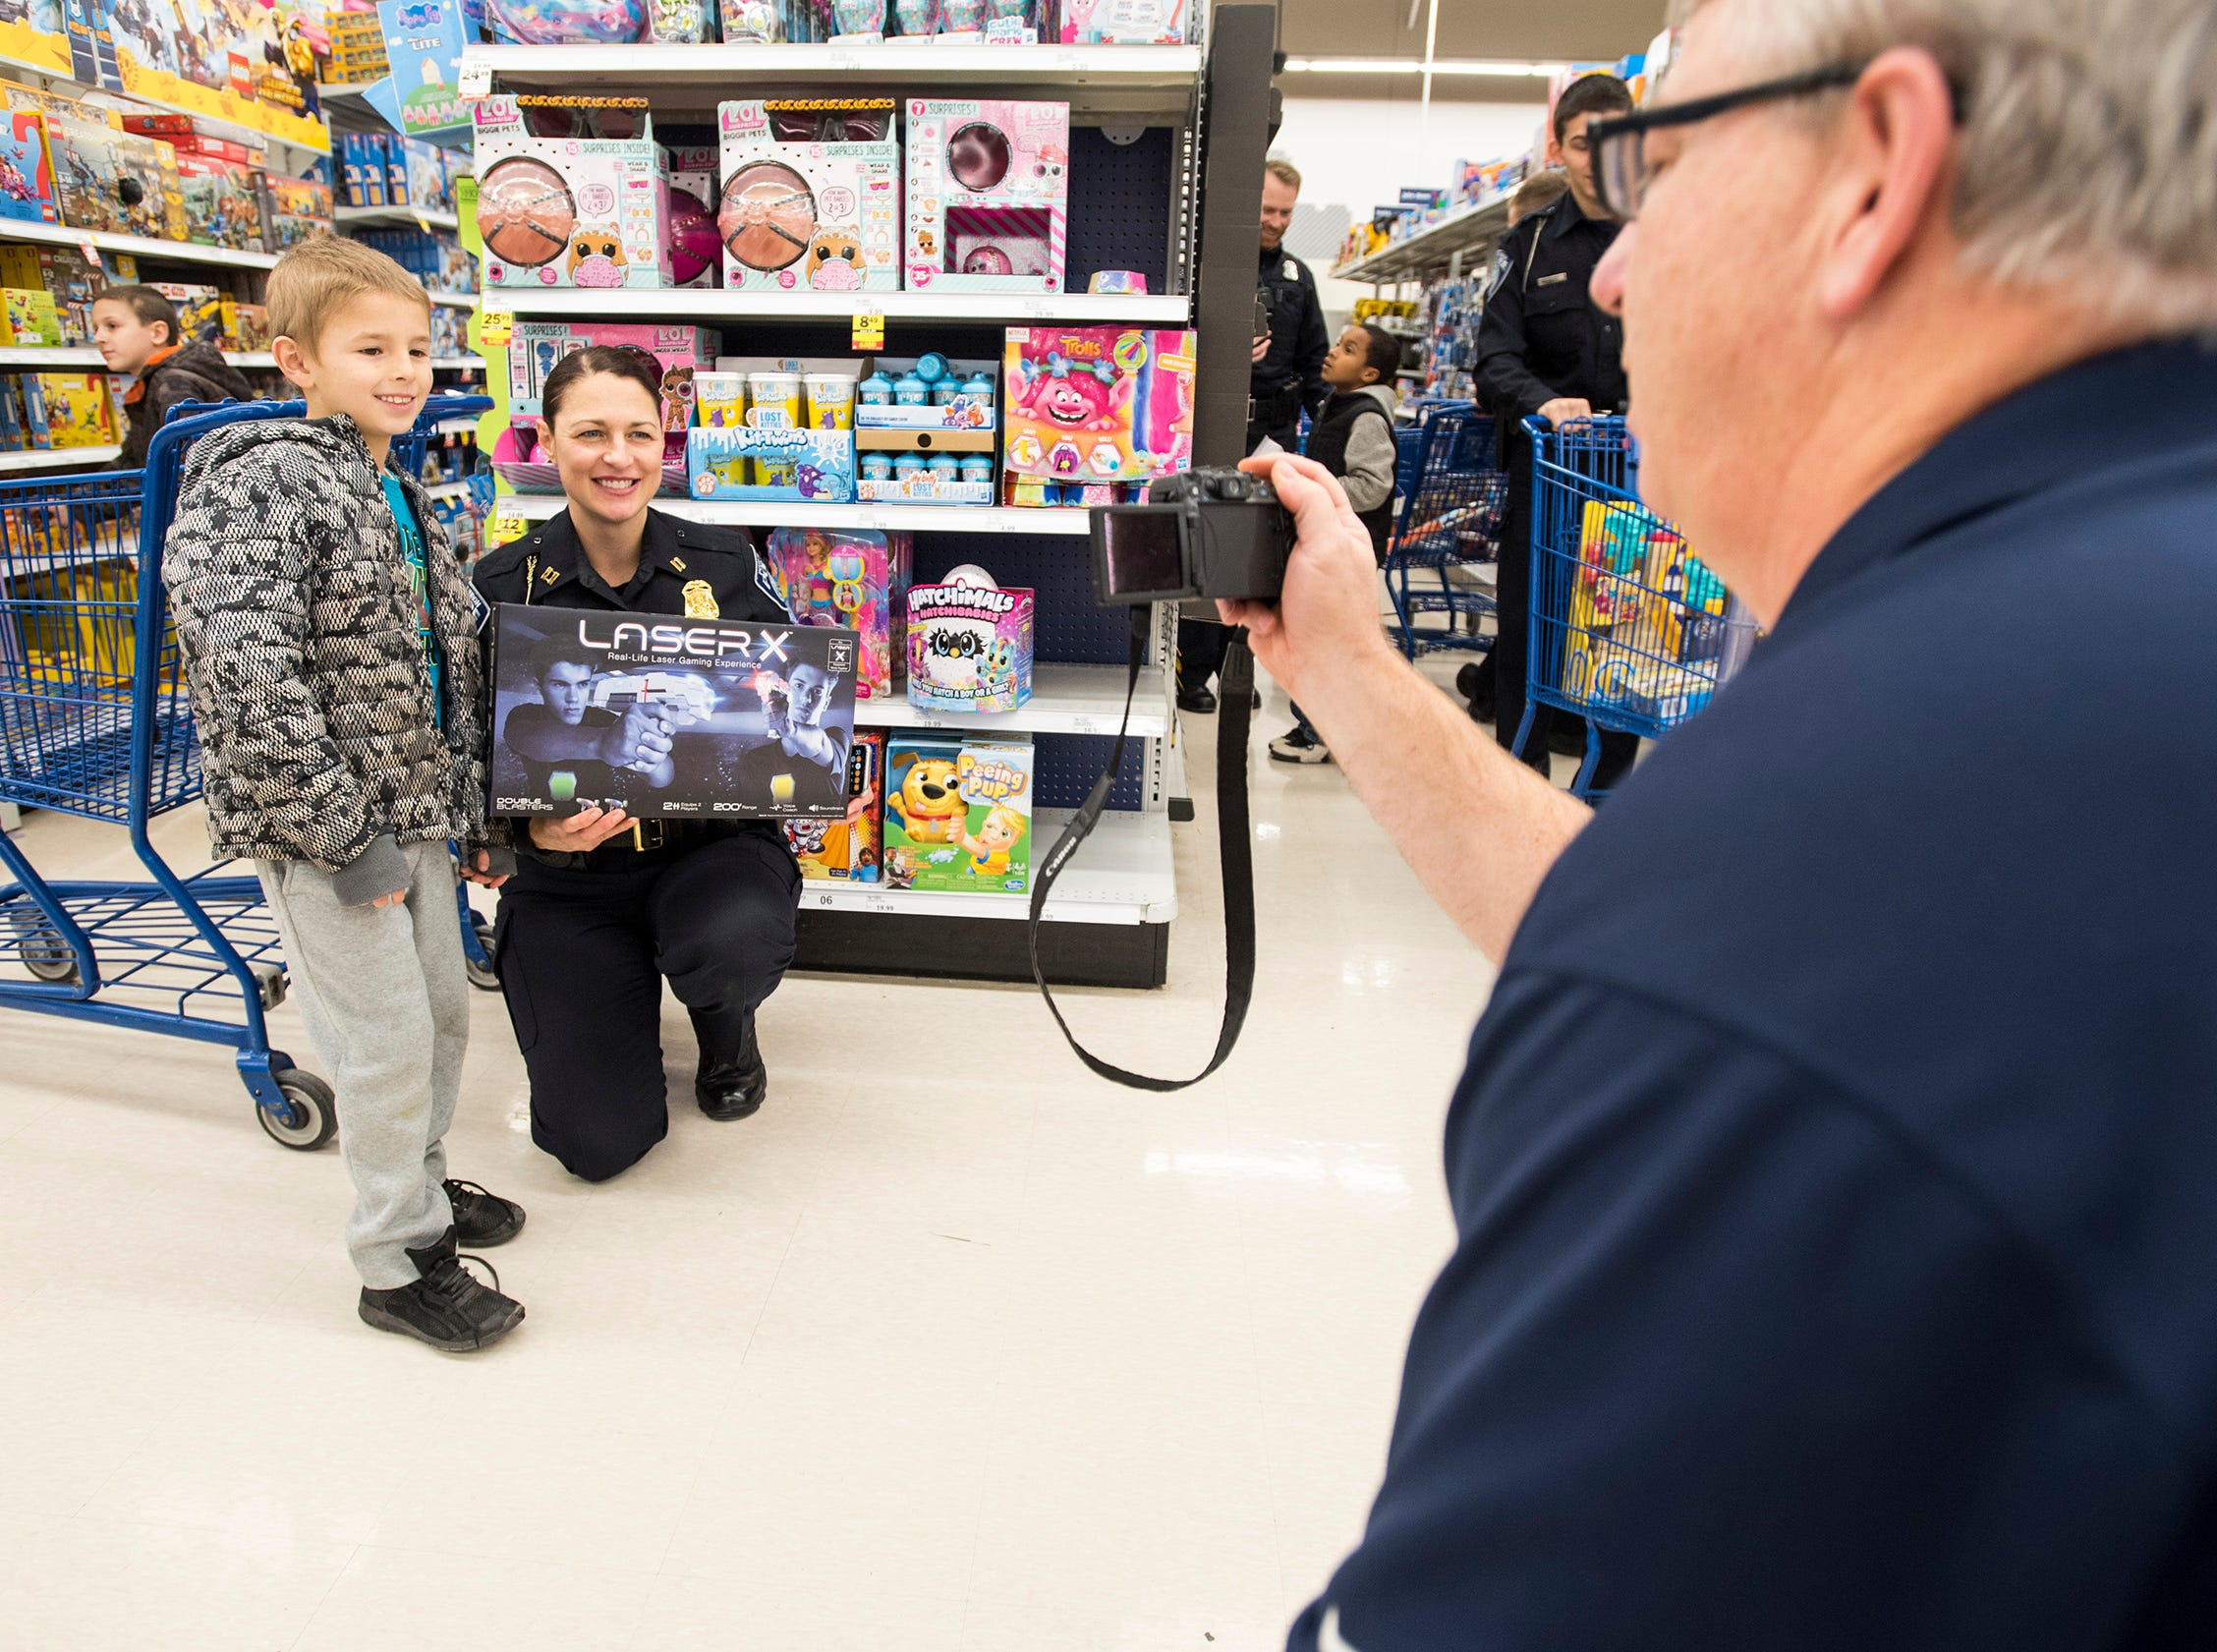 St. Clair County Sheriff Public Information Officer Steve Campau, right, takes a photo of Port Huron Police Capt. Marcy Kuehn, center, and Adrian Villarreal, 8, at Christmas with a Cop Tuesday, Dec. 11, 2018 at Meijer in Fort Gratiot.